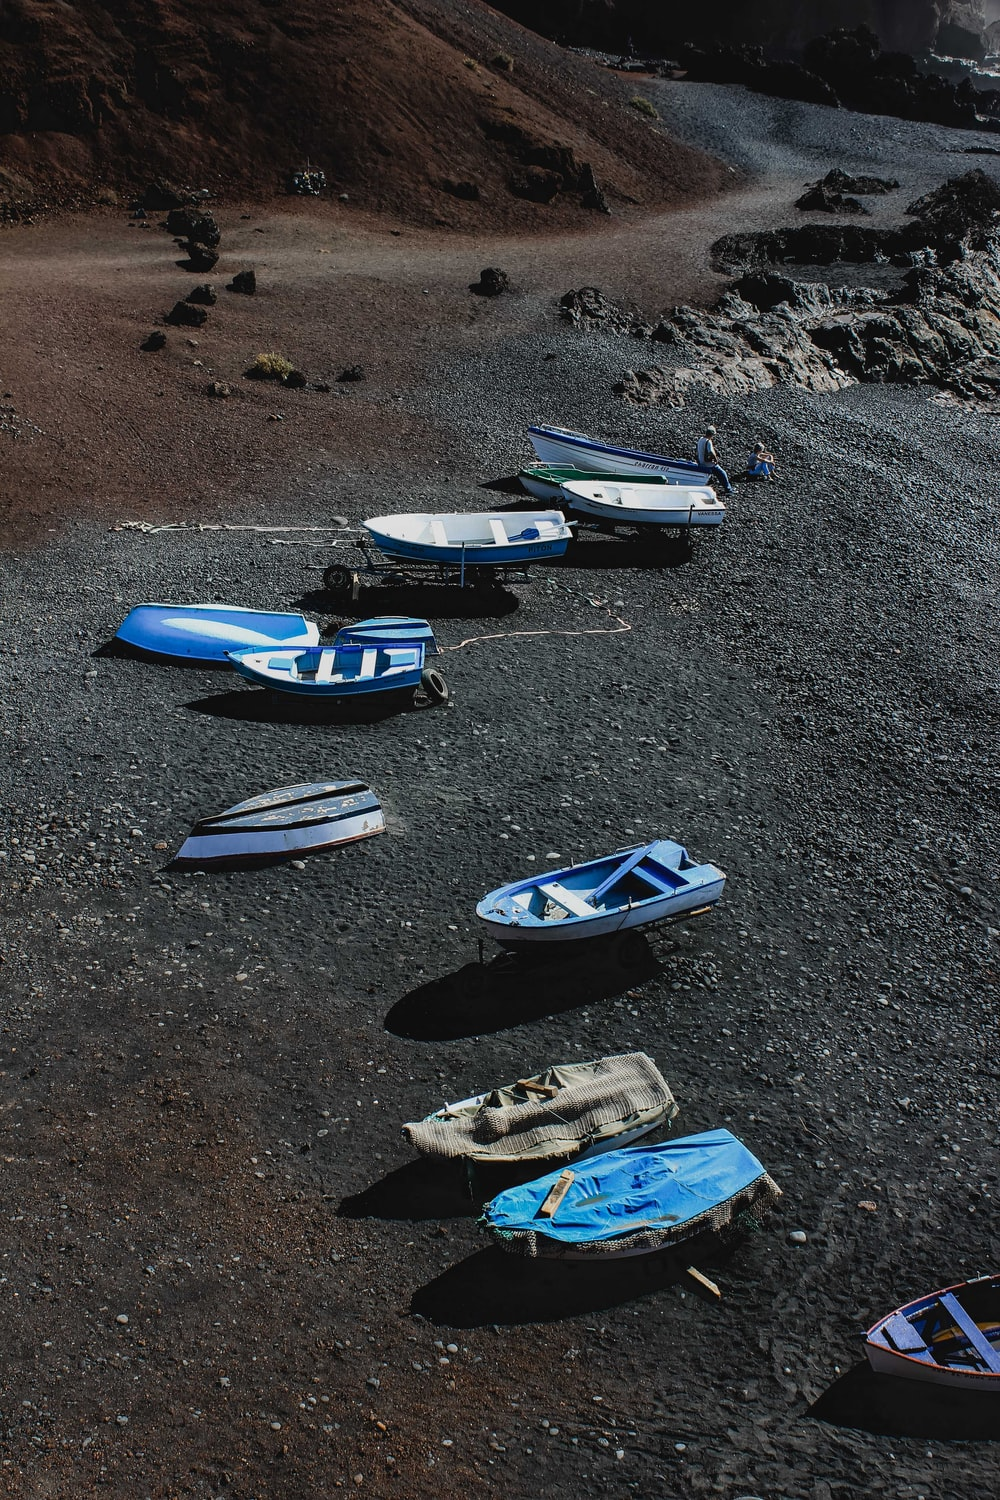 blue and white kayaks on gray sand during daytime